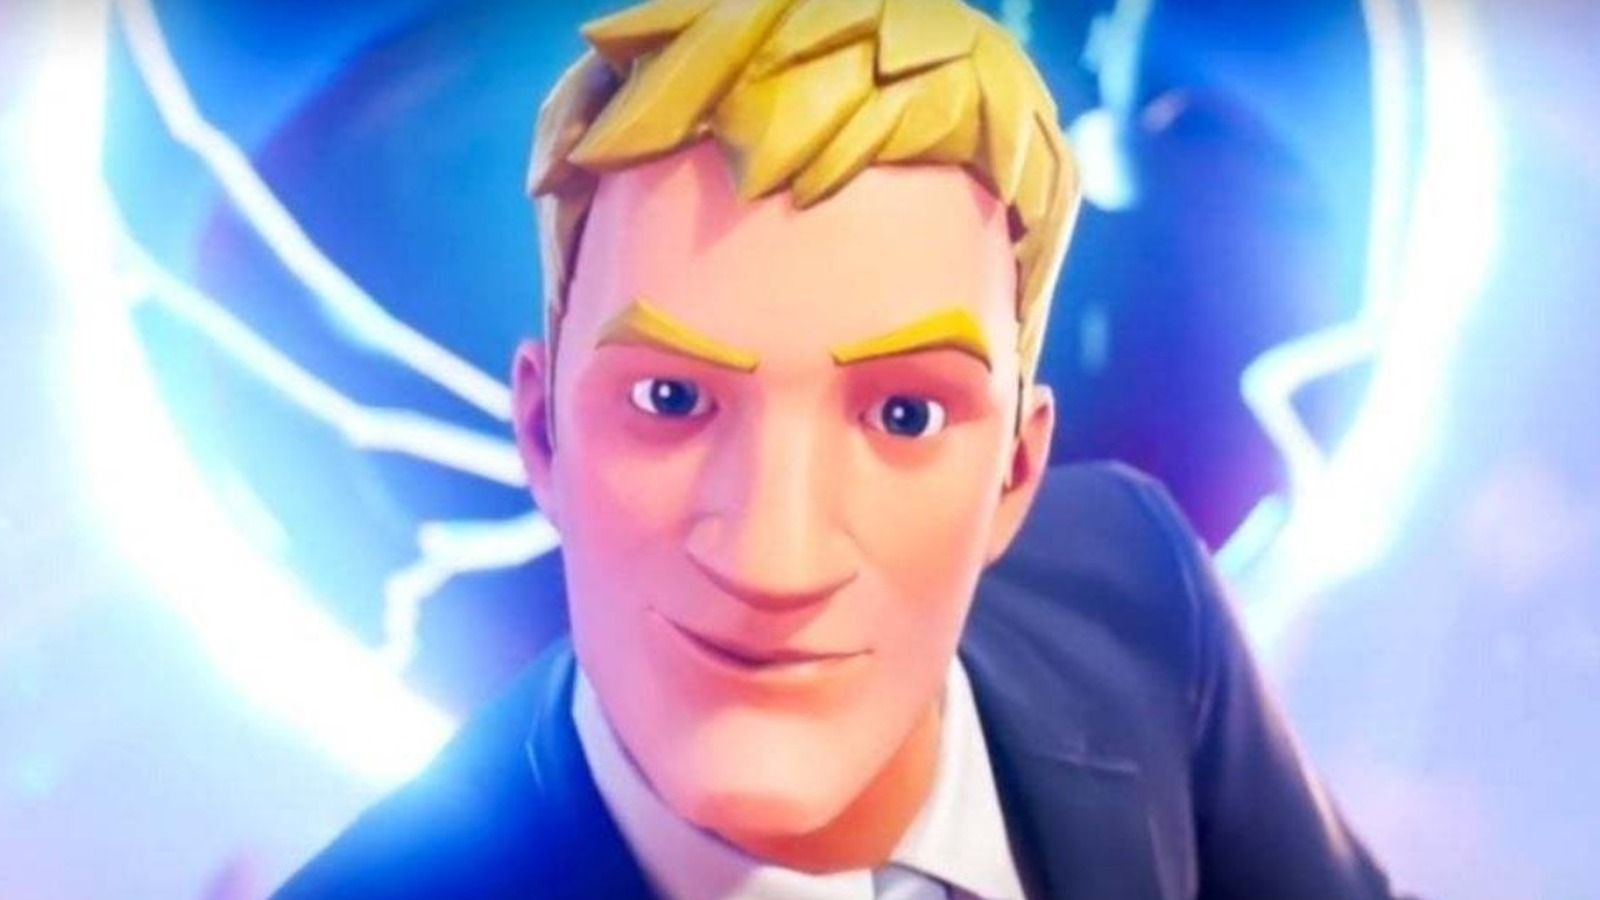 Fortnite New Skins 2021 These Are The Best New Skins In Fortnite Chapter 2 Season 6